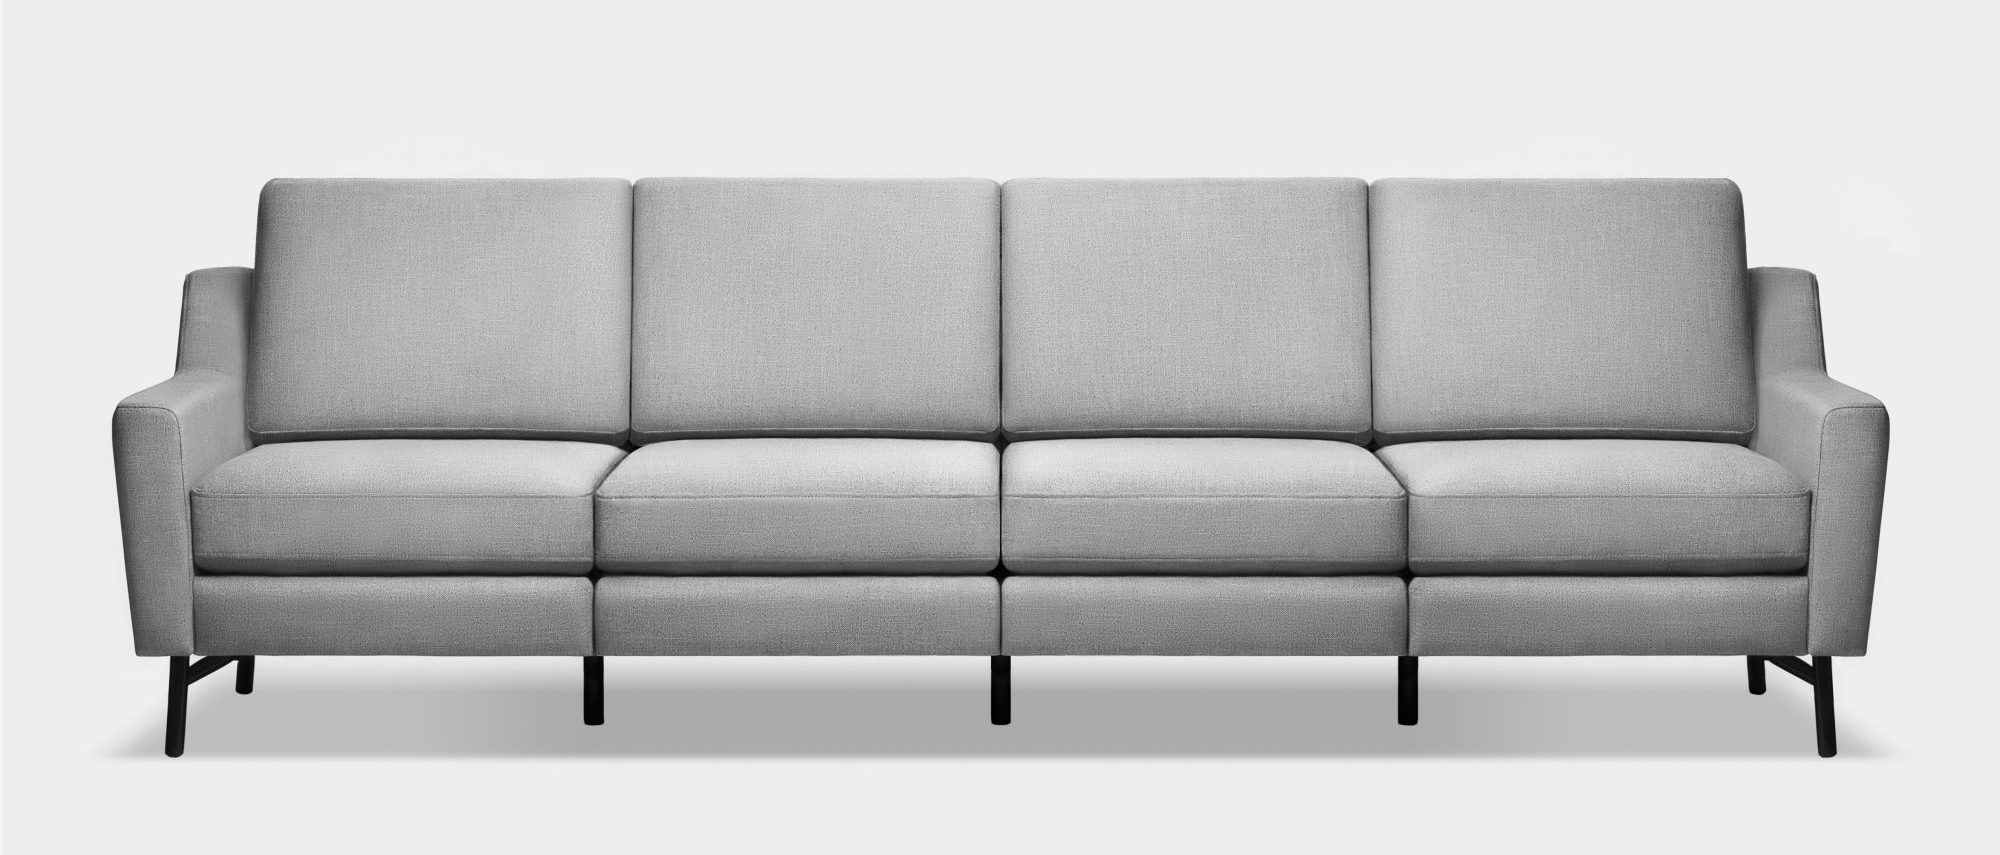 burrow, modular sofa